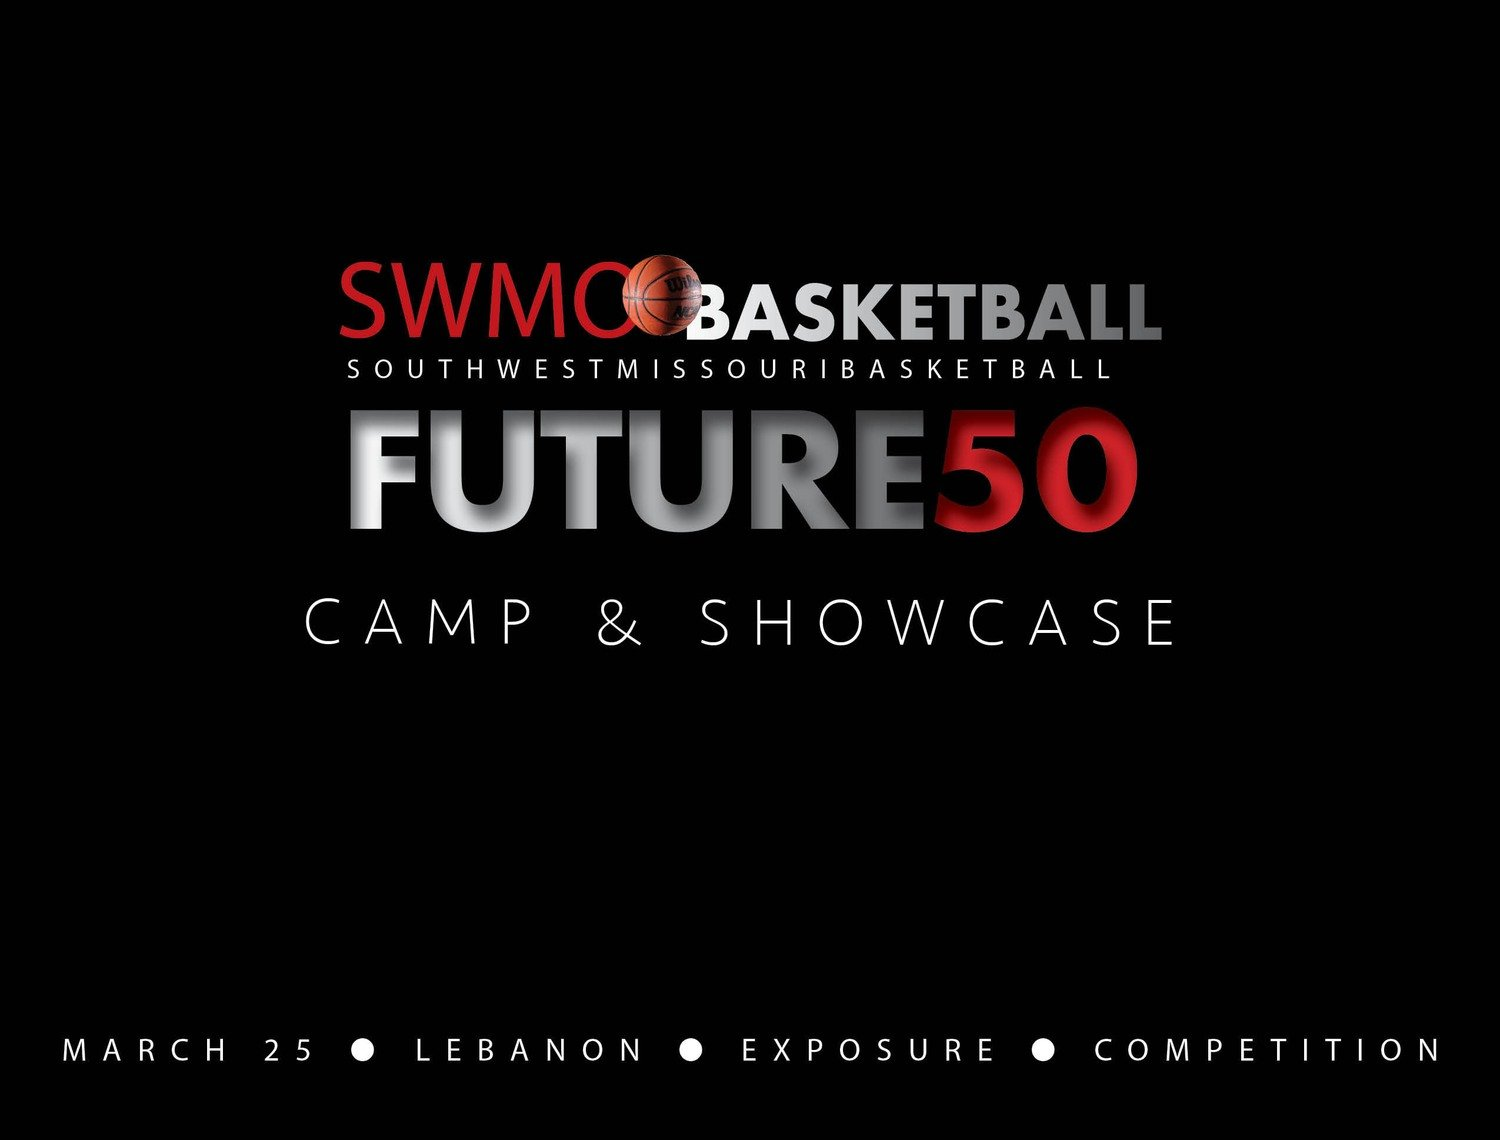 Future50 Camp & Showcase